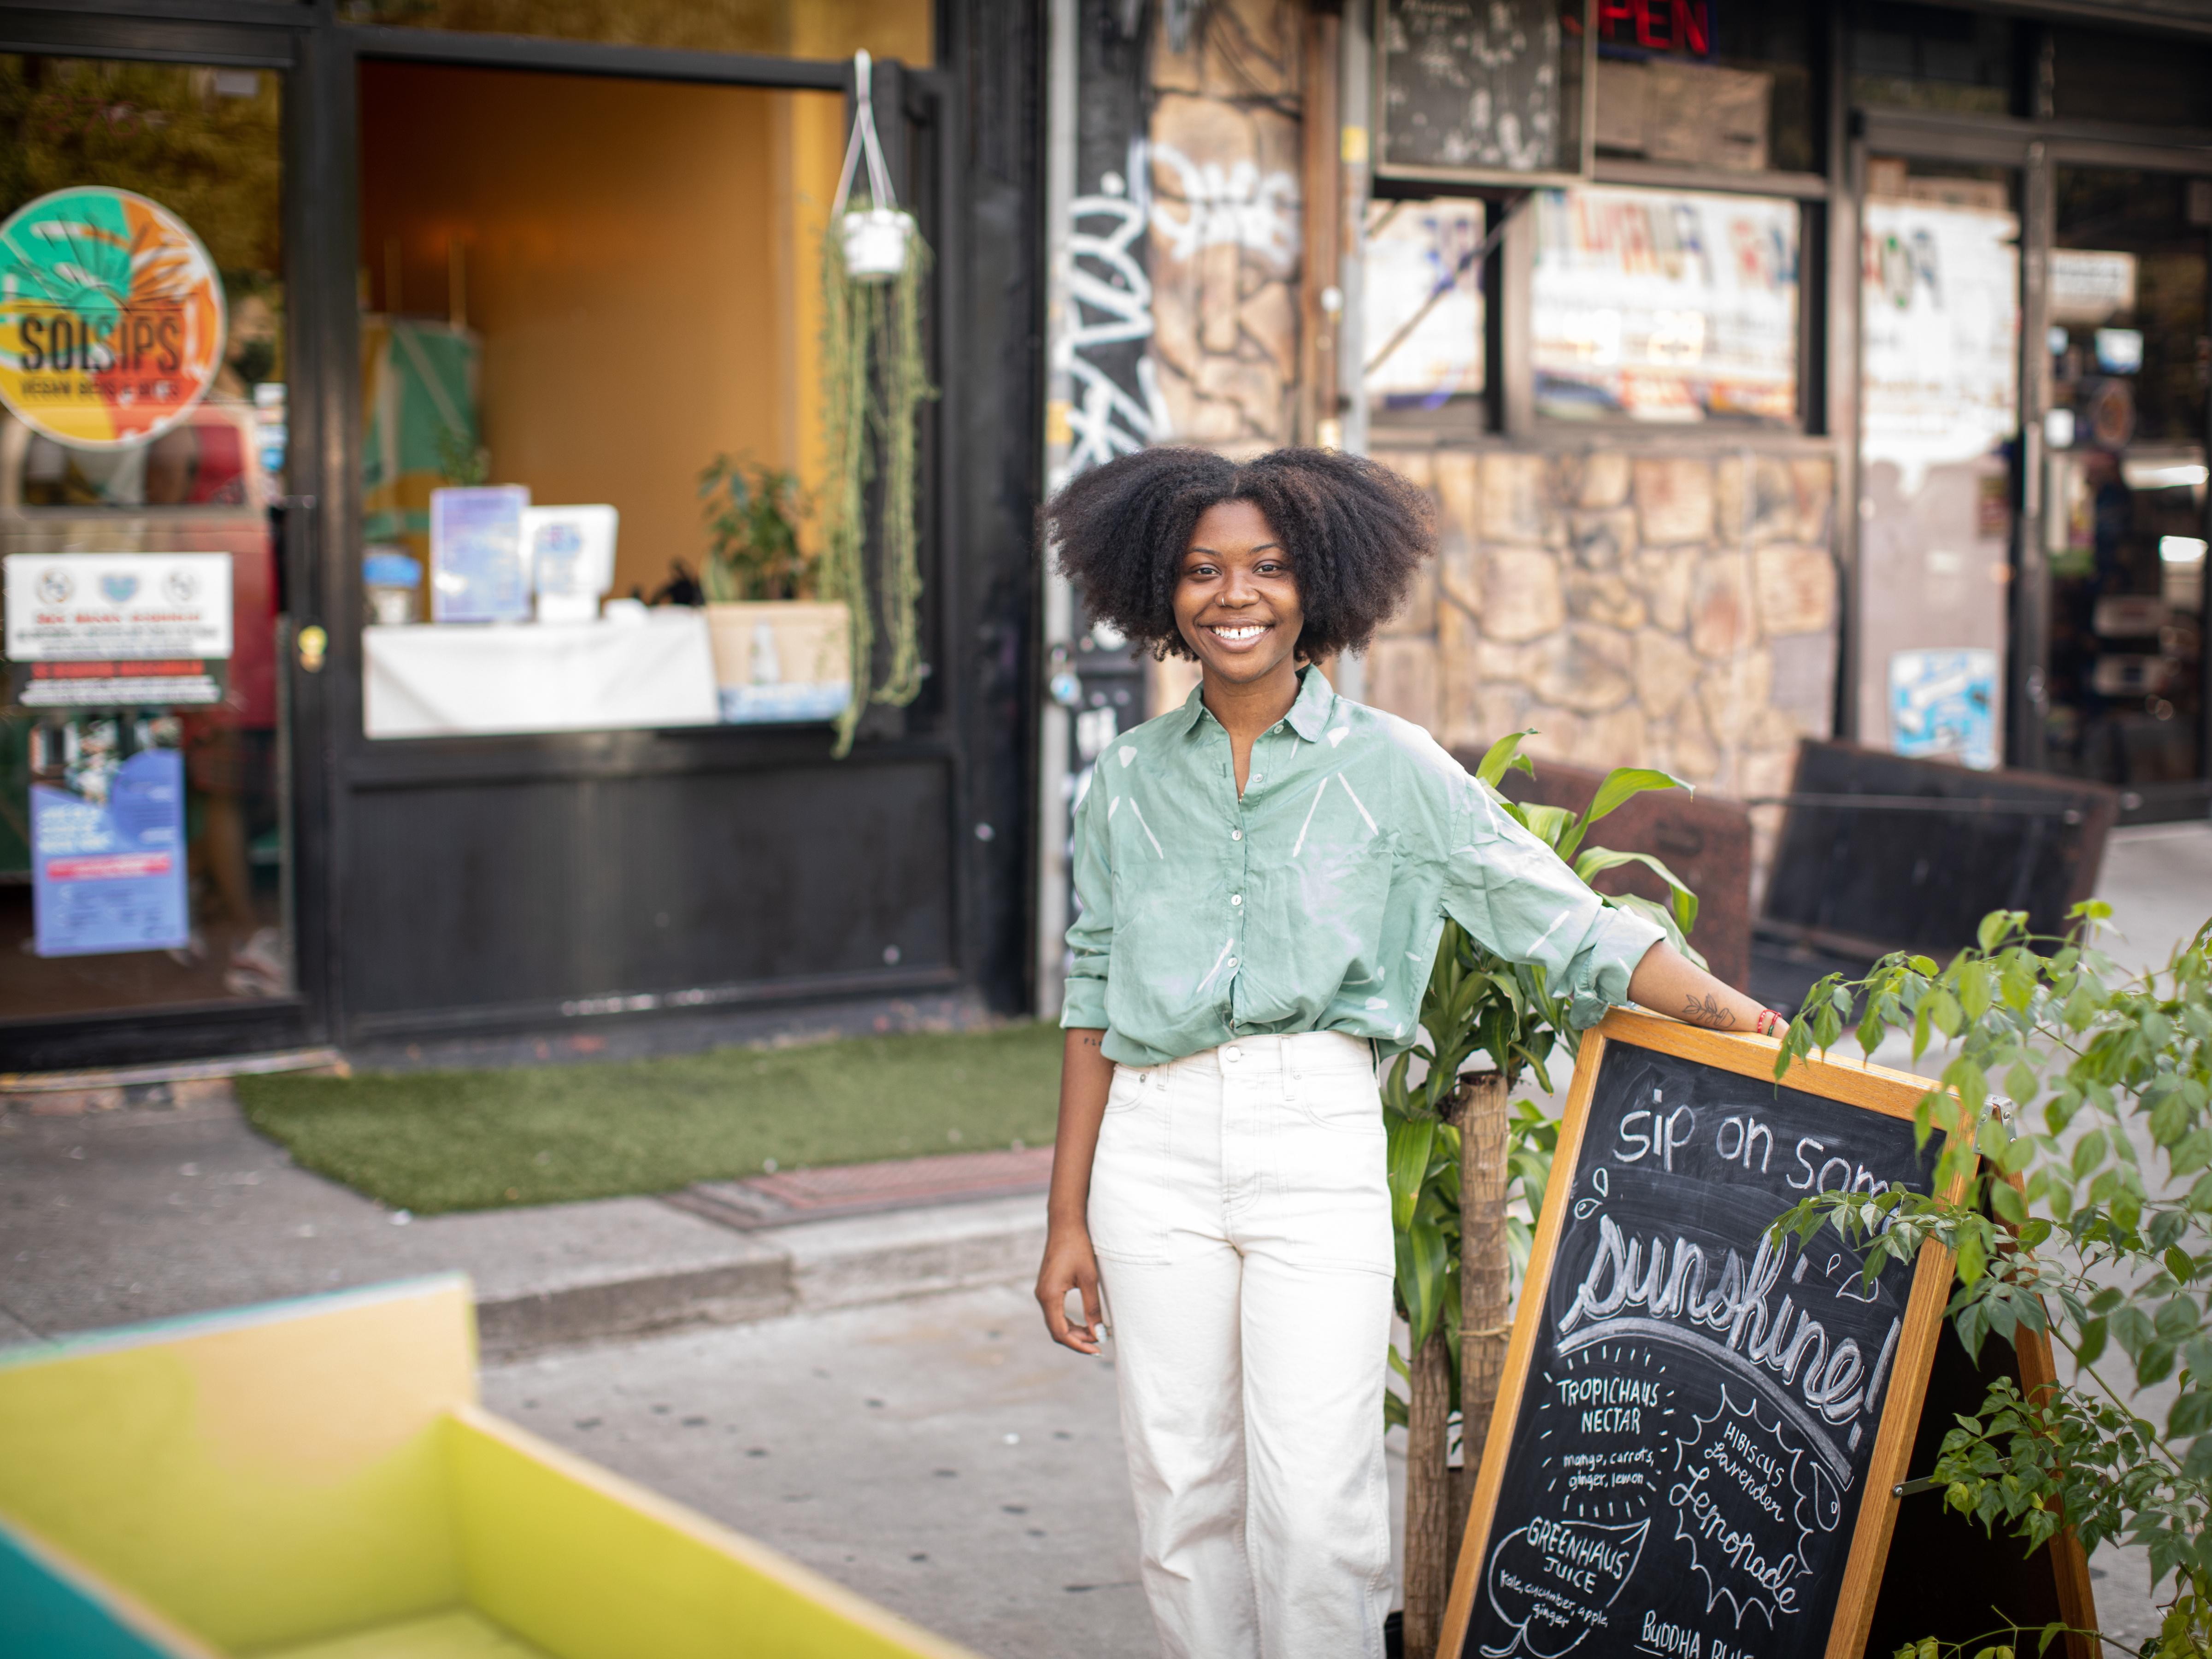 Smiling woman standing in front of a sandwich board.